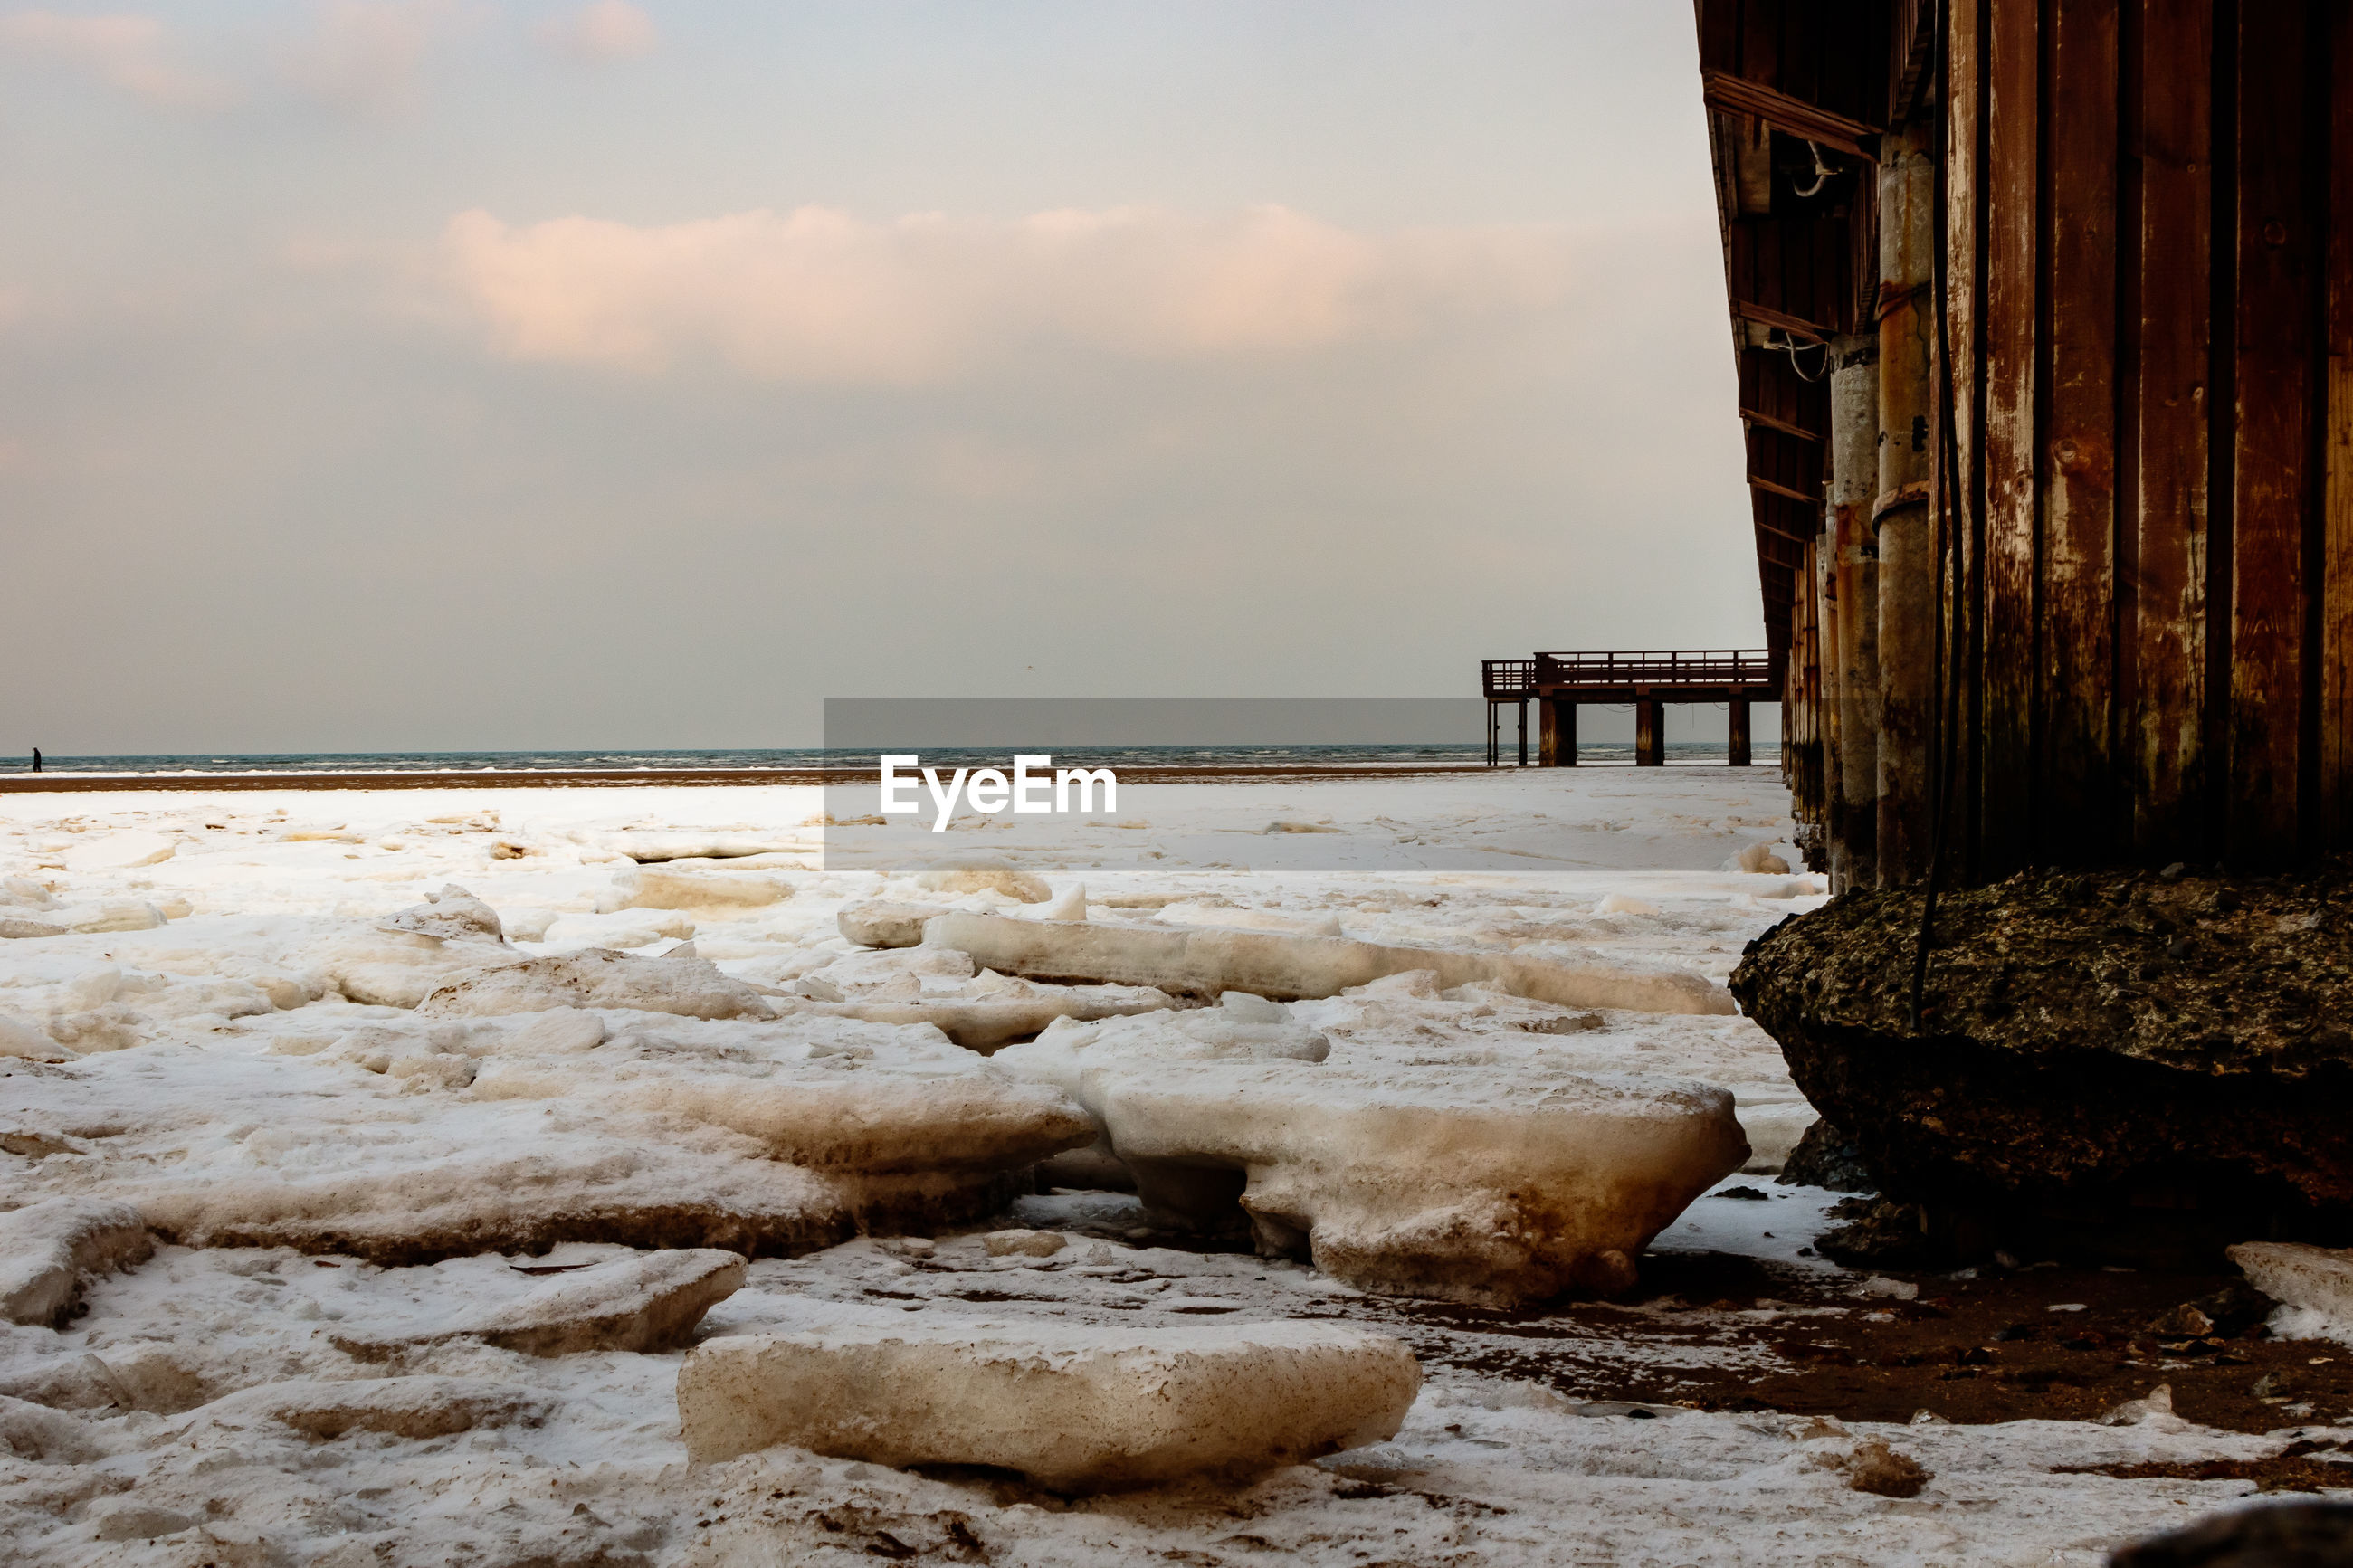 SCENIC VIEW OF SEA DURING WINTER